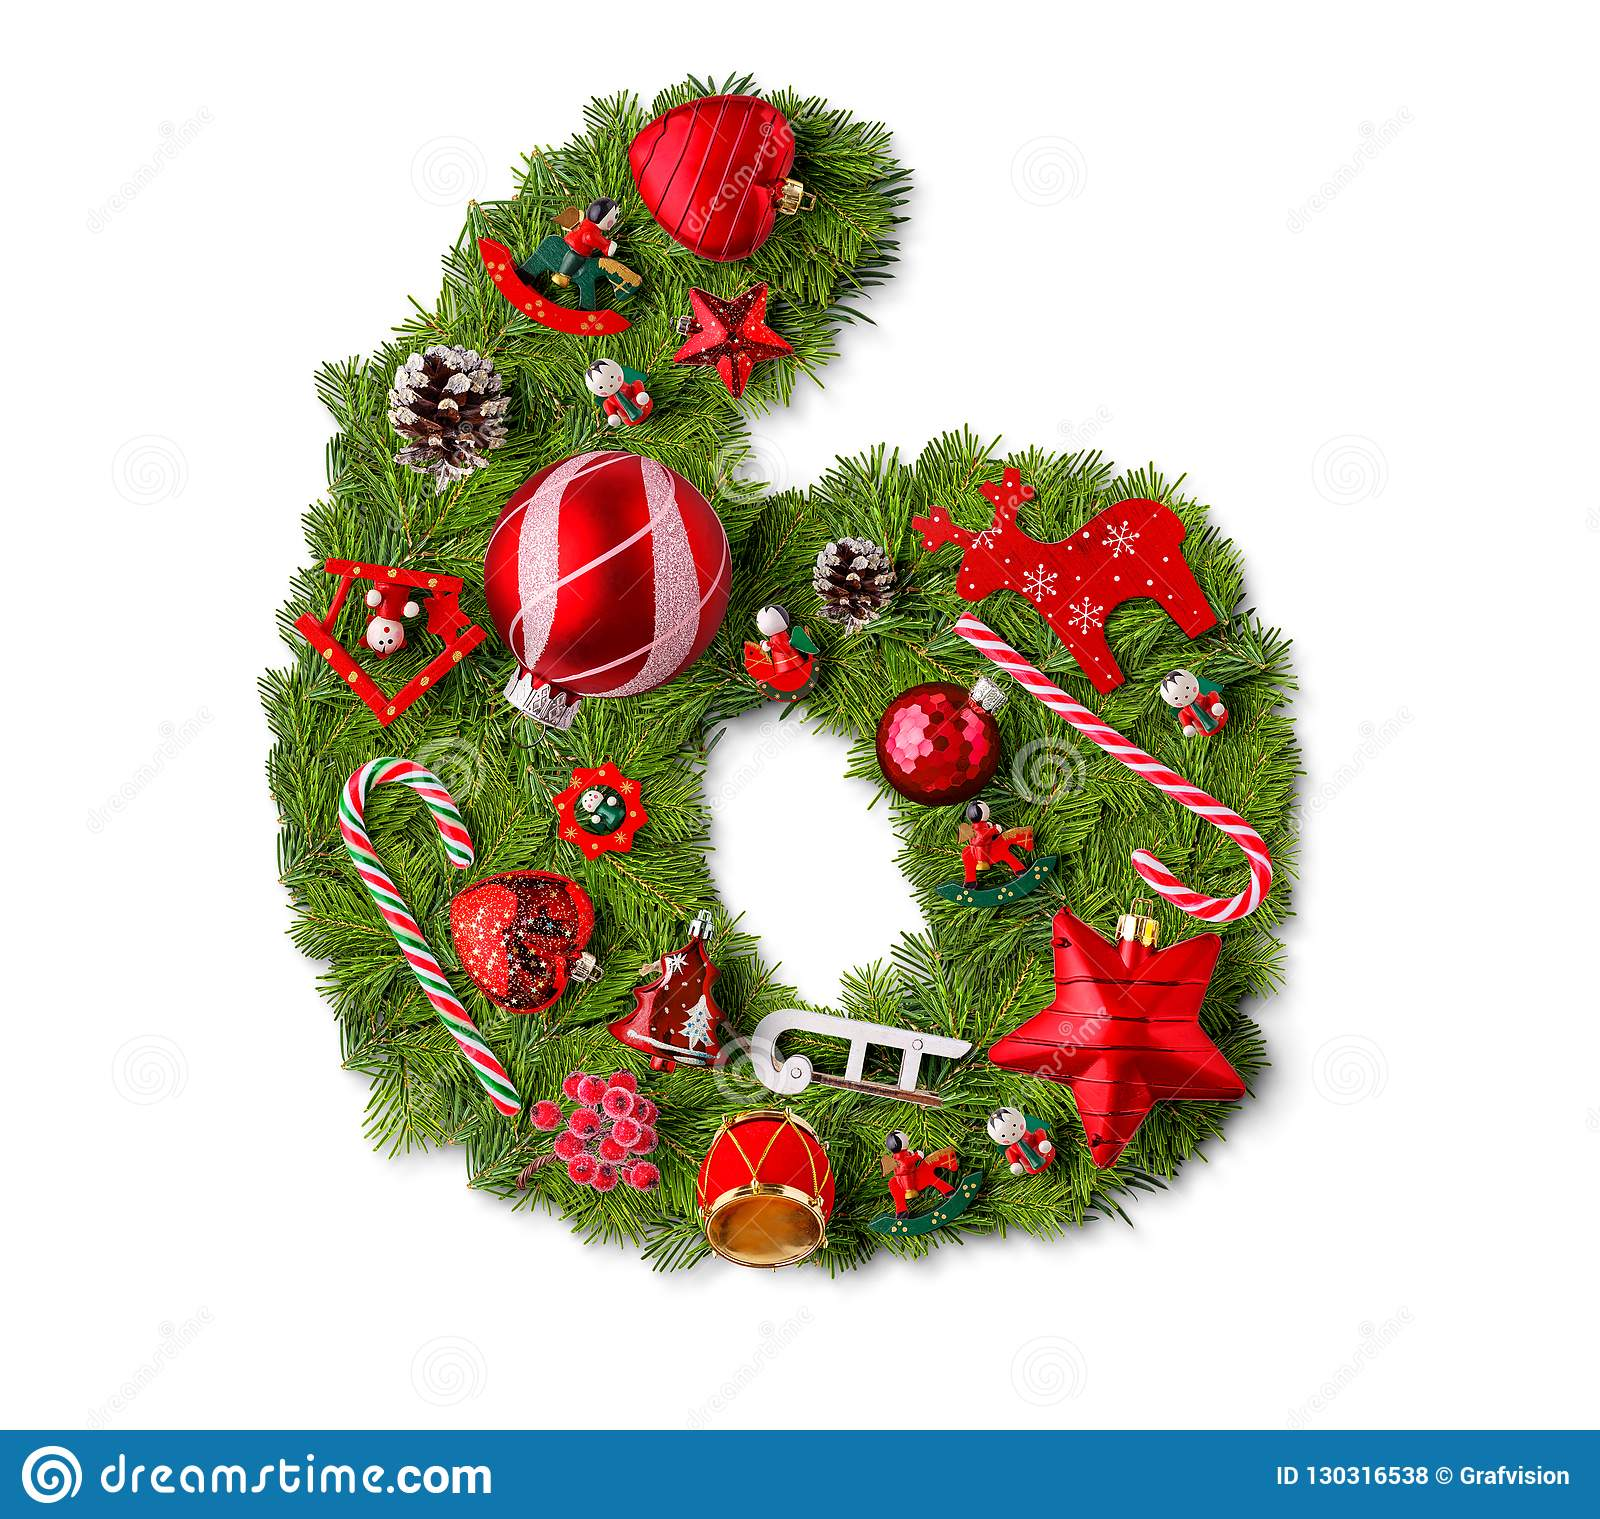 Number 6 Christmas Tree Decoration Stock Photo Image Of Decorative Branch 130316538